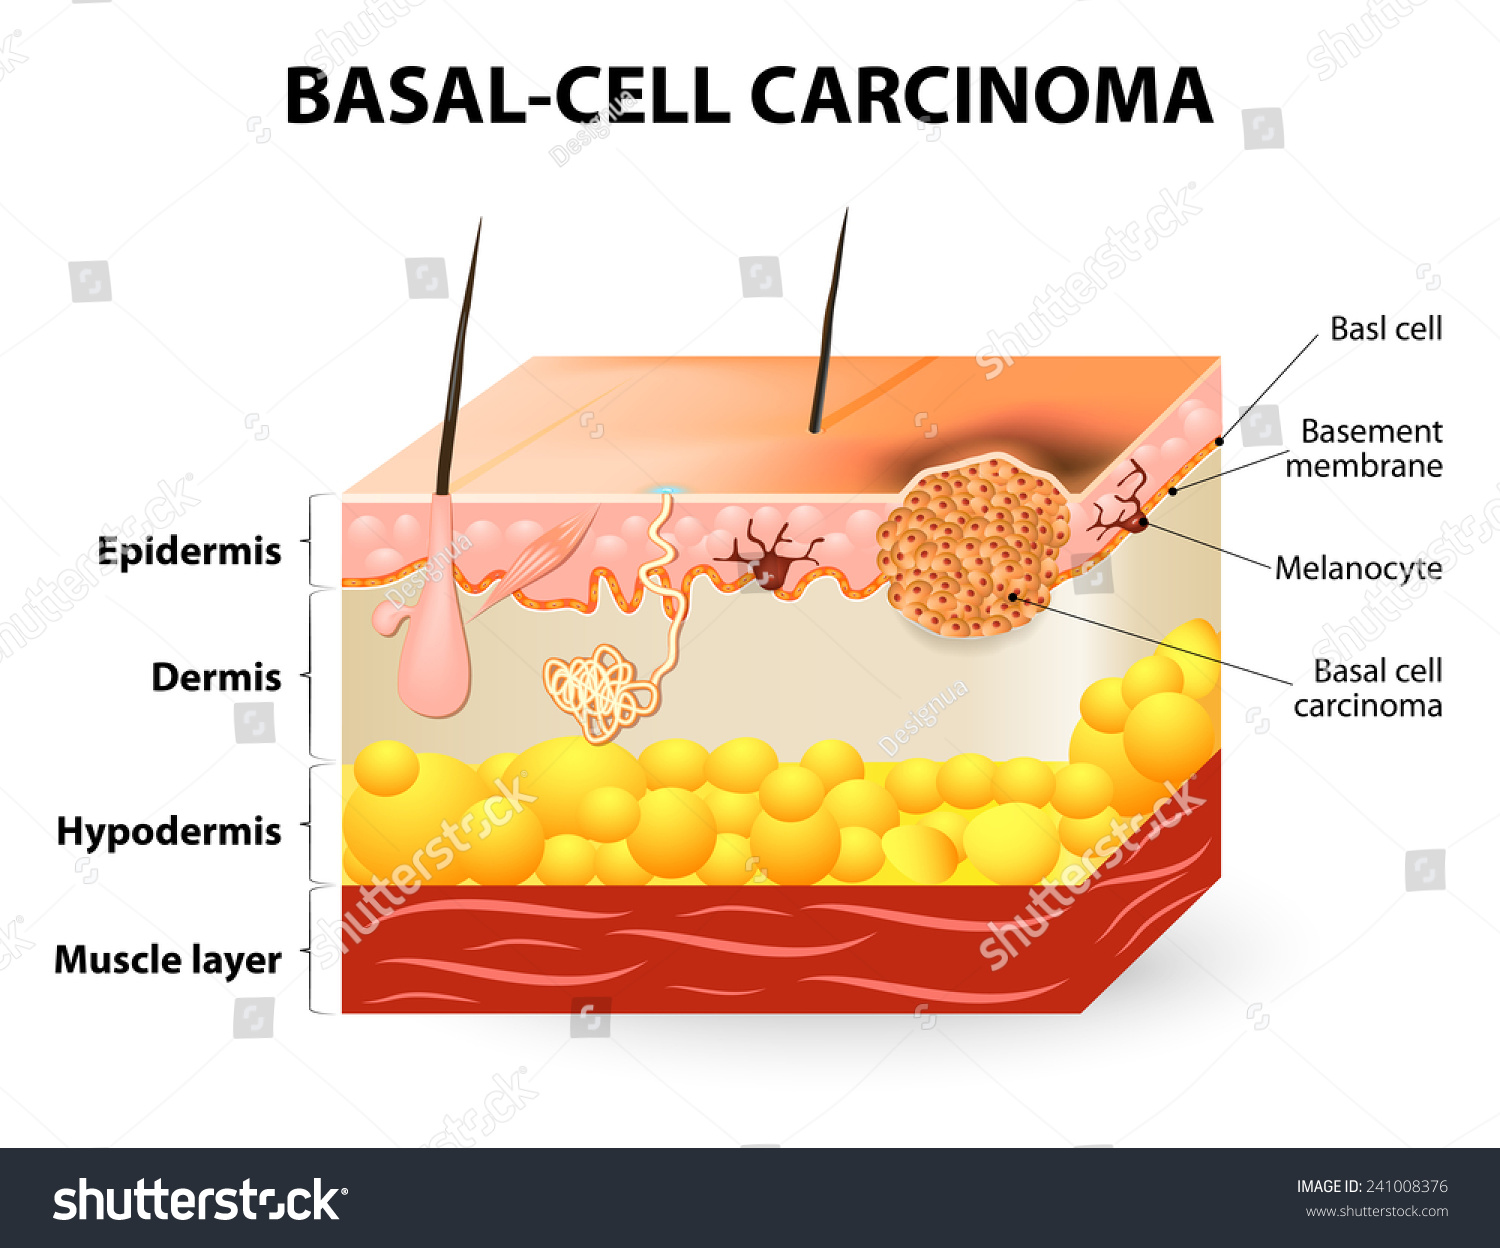 basal cell carcinoma essay Squamous cell carcinoma is the second most common form of skin cancer — though it is deadlier than the more commonly occurring basal cell if left untreated, squamous cell carcinomas are more .